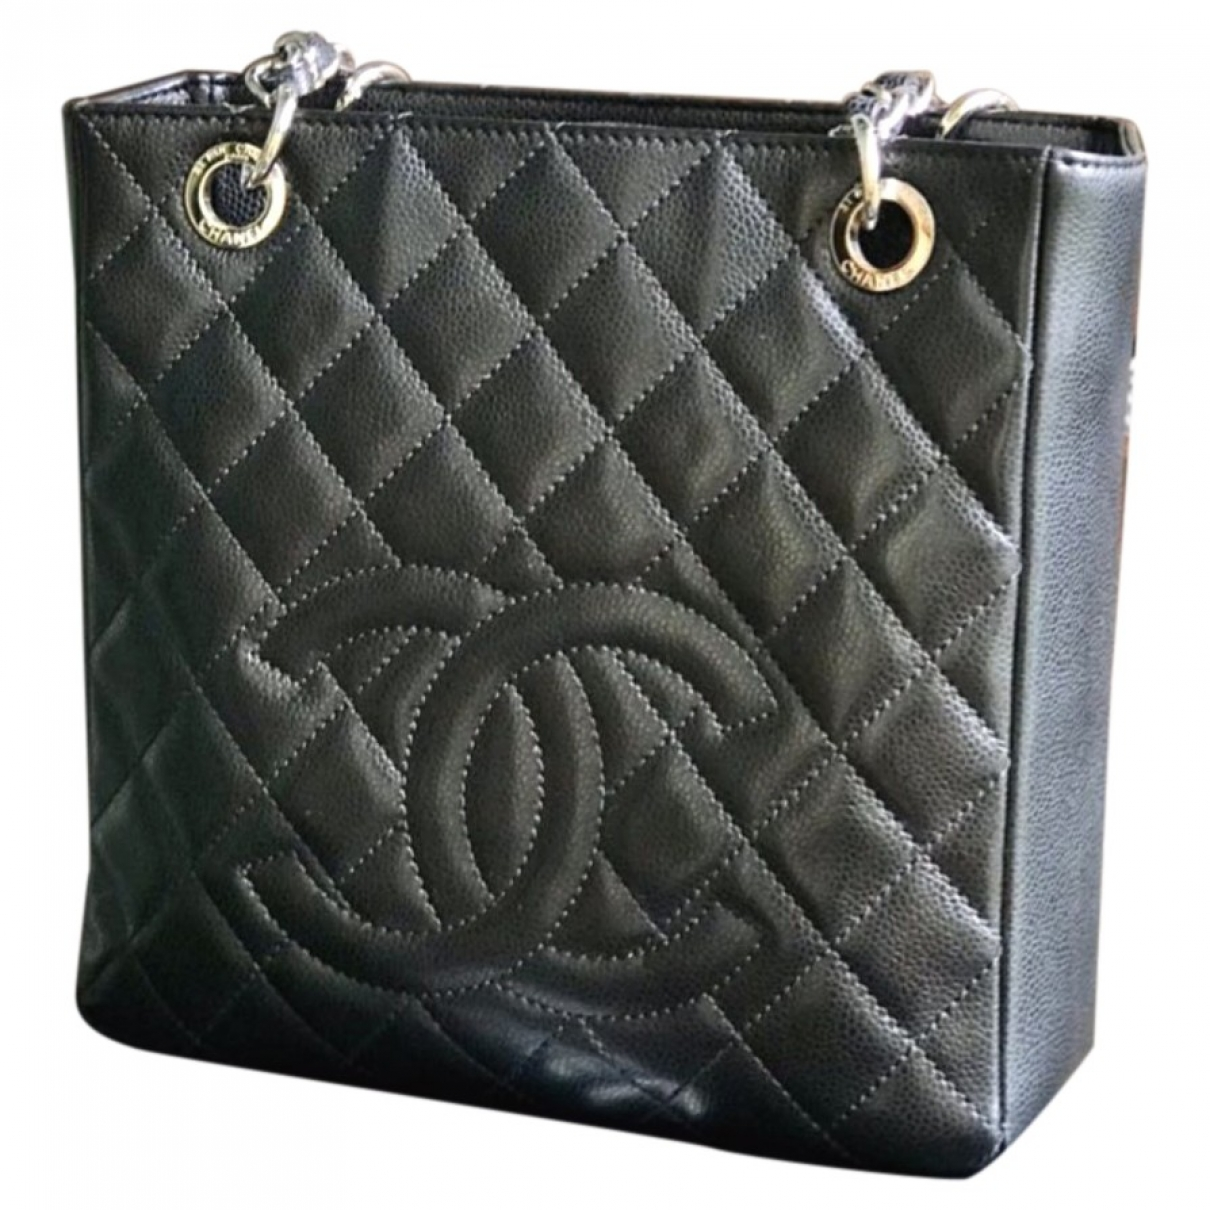 Chanel Petite Shopping Tote Black Leather handbag for Women \N